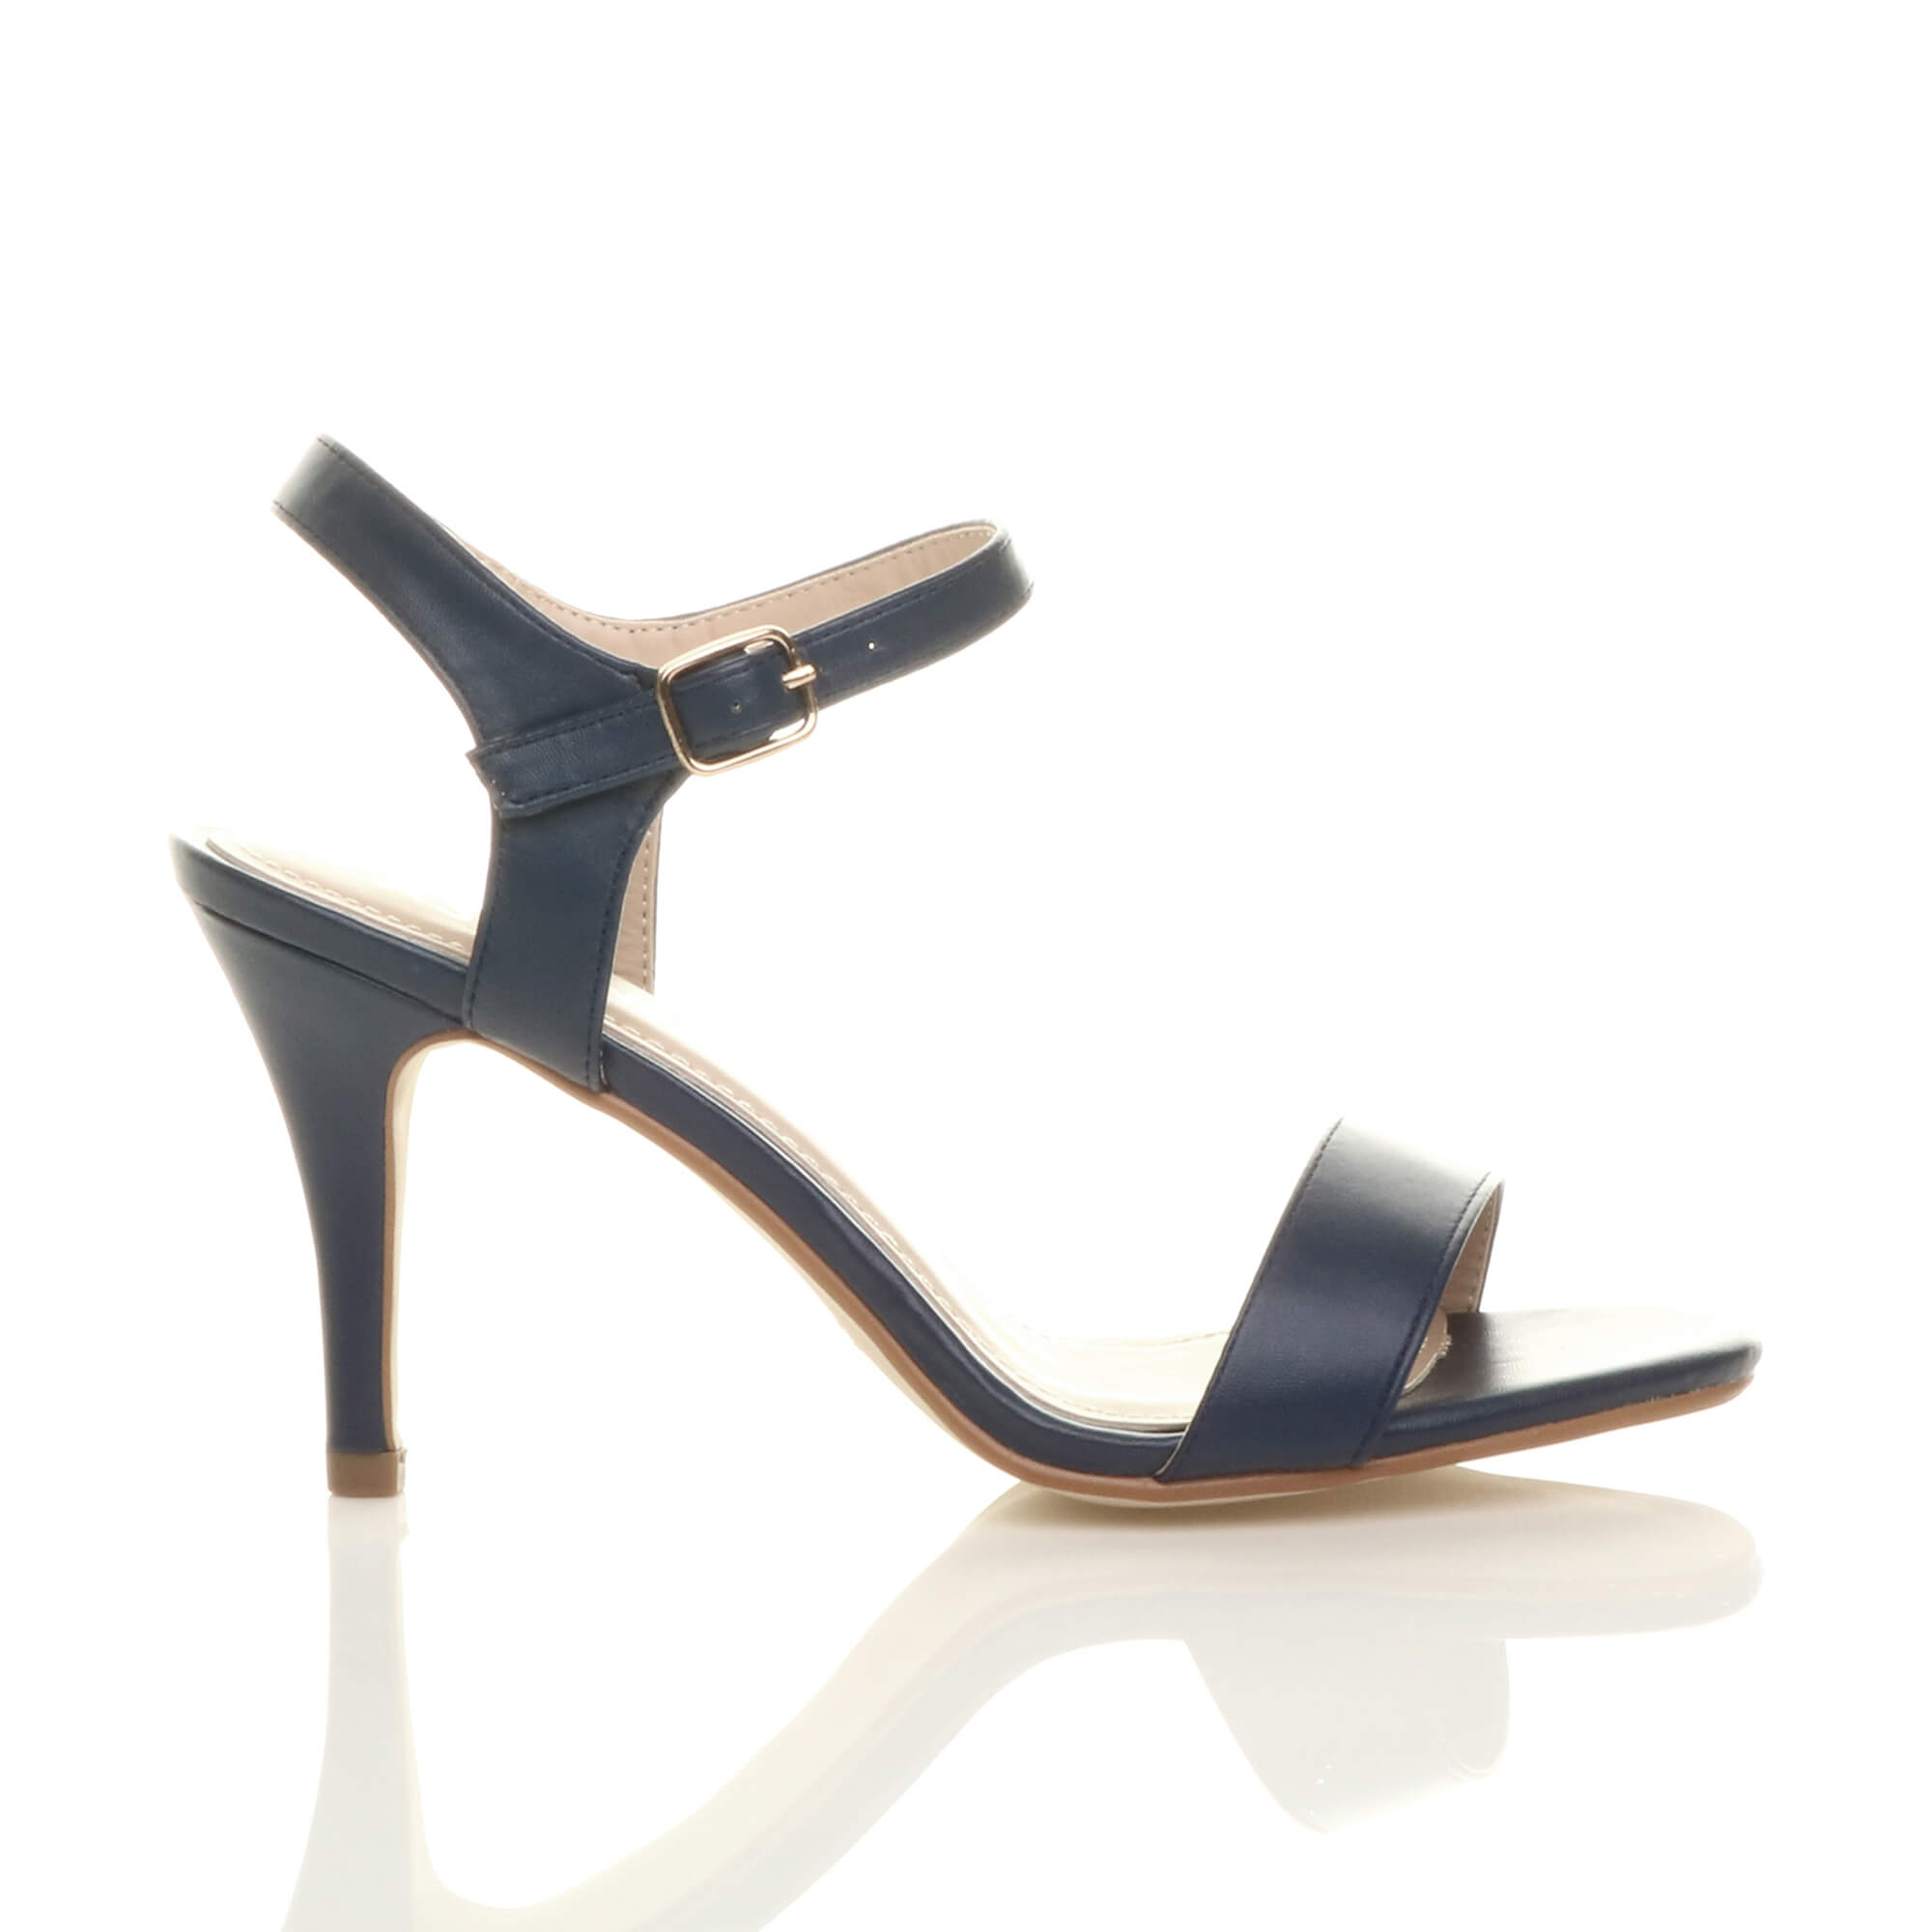 WOMENS-LADIES-HIGH-HEEL-BUCKLE-STRAPPY-BASIC-BARELY-THERE-SANDALS-SHOES-SIZE thumbnail 66